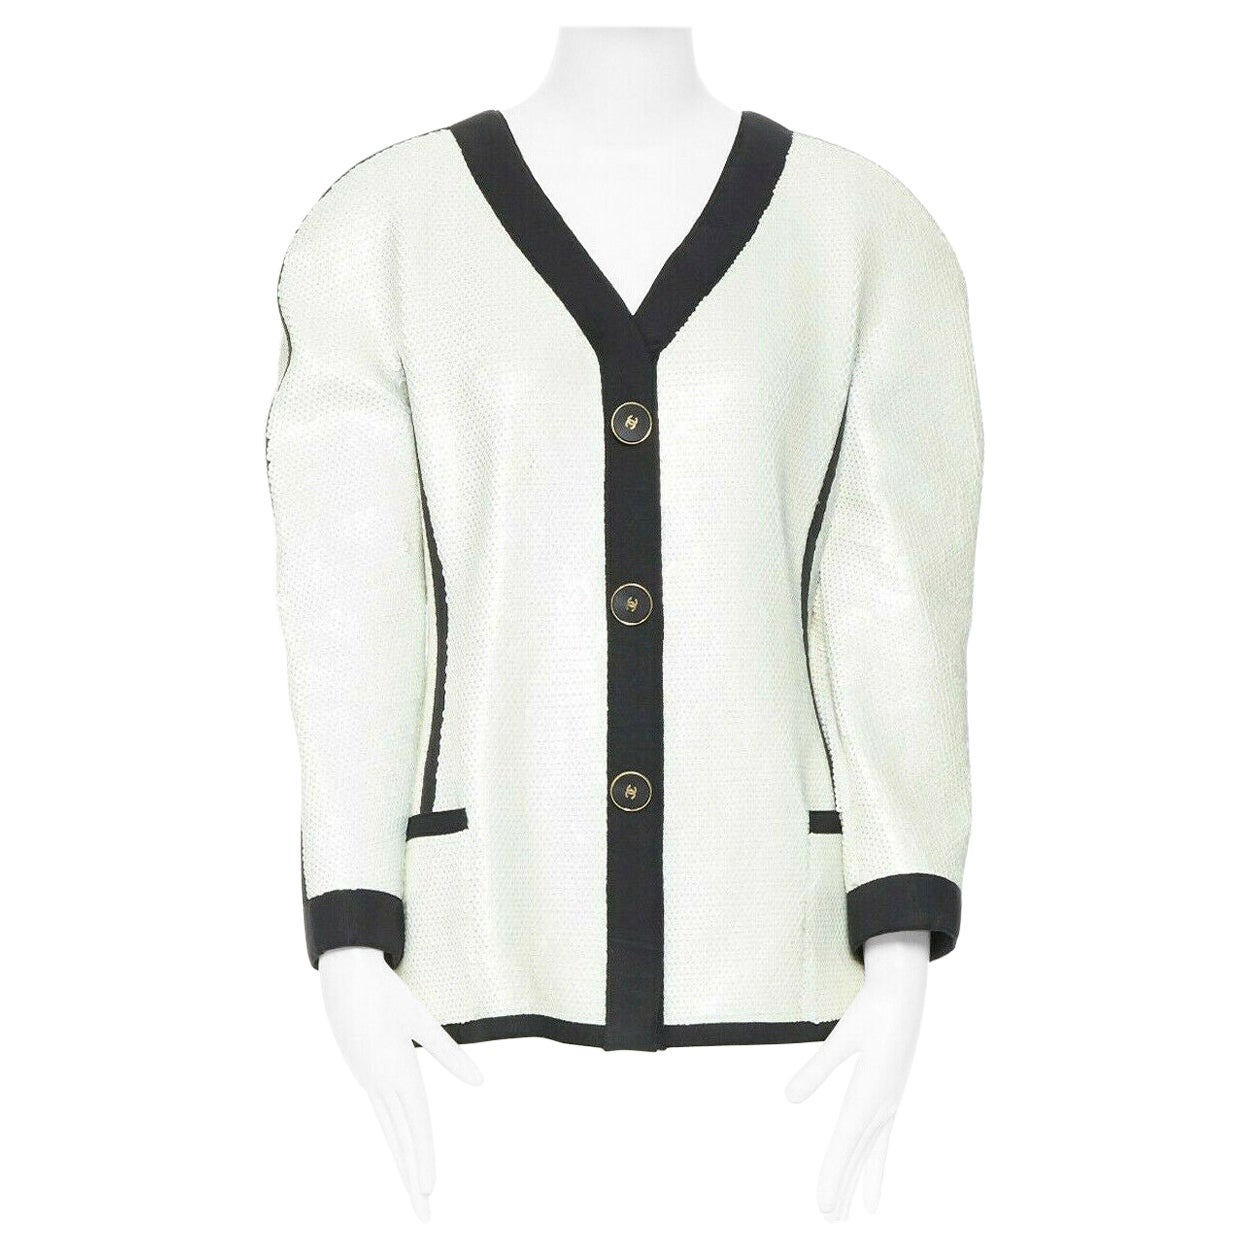 runway CHANEL SS91 white sequin black grosgrain trim scuba zipper jacket FR44